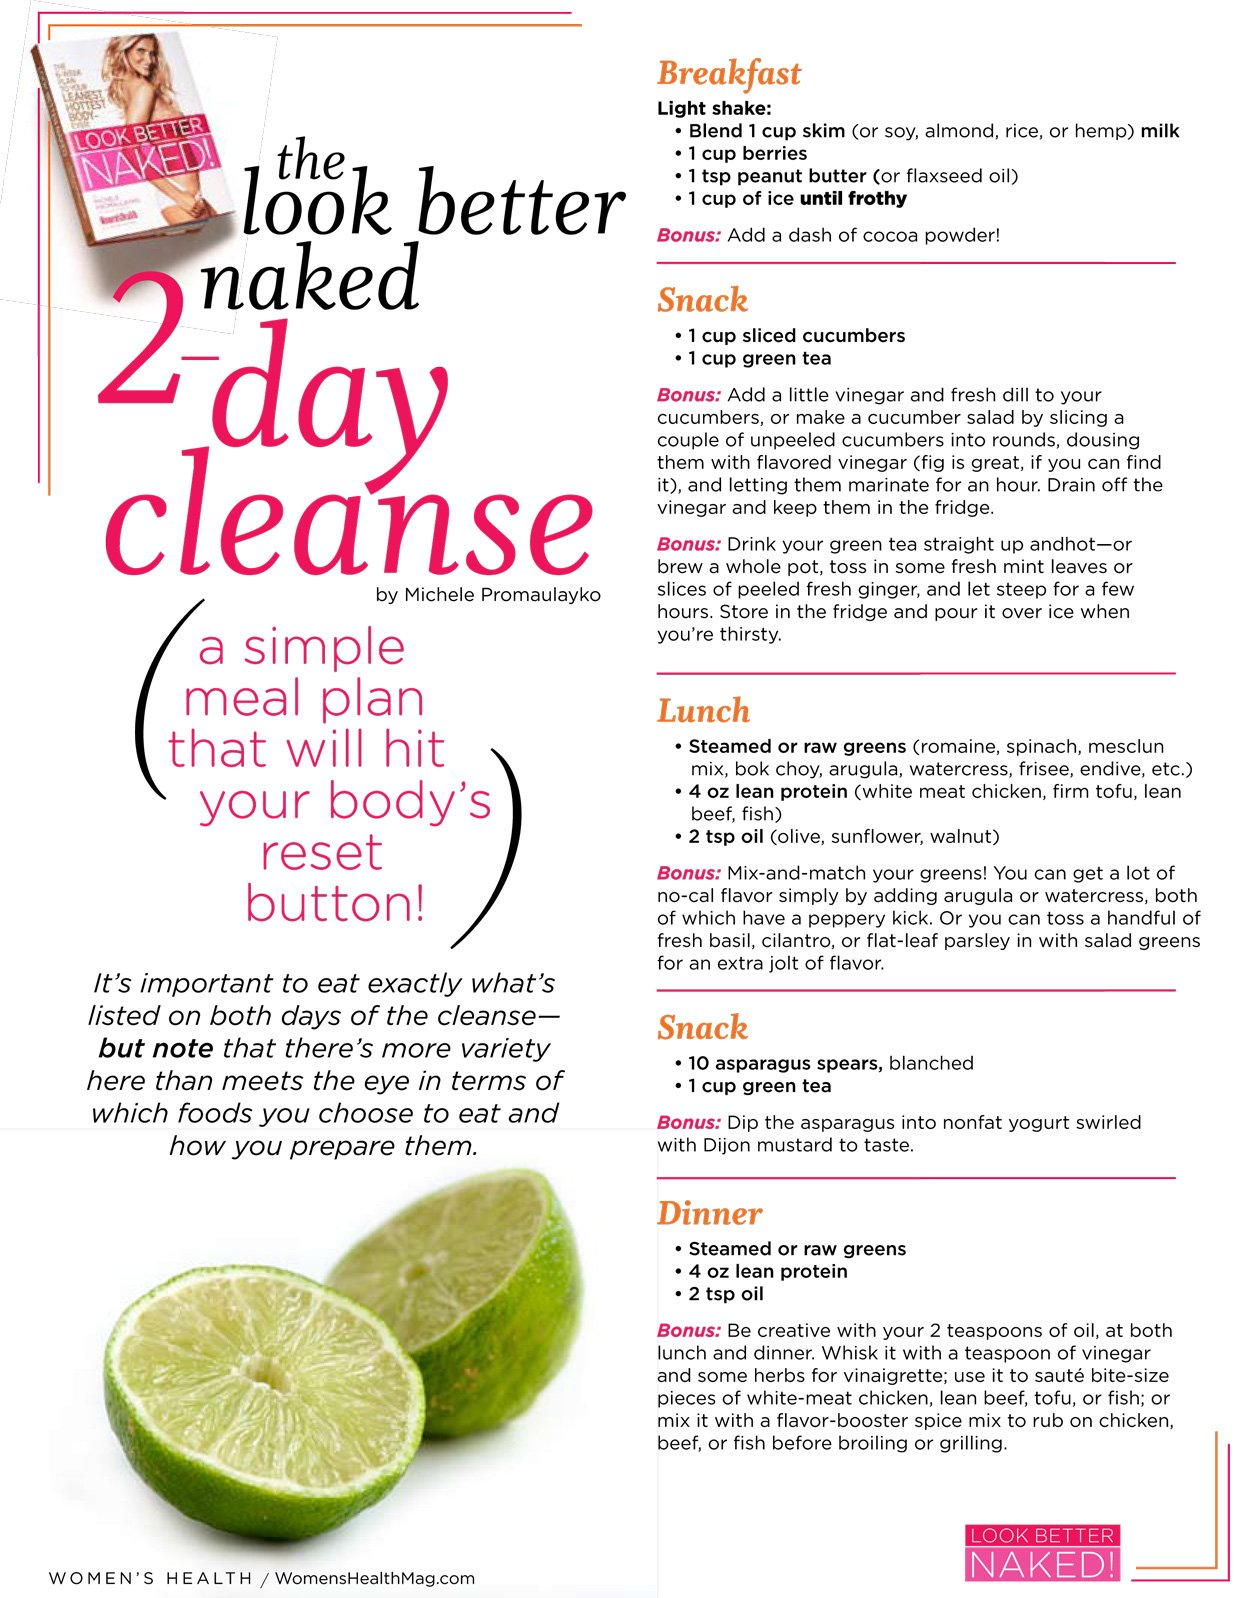 Look Better 2 Days Cleanse - PositiveMed